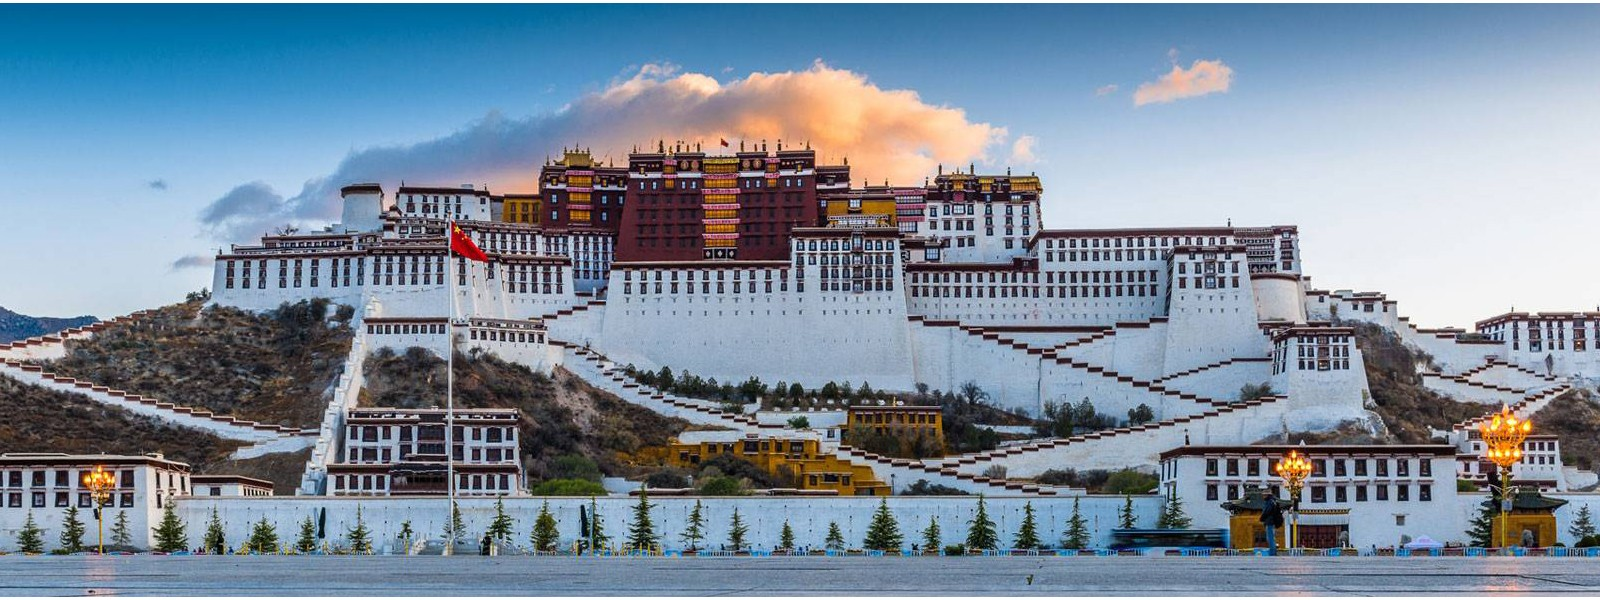 Ganden and Samye Monastery Overland Tours in Tibet